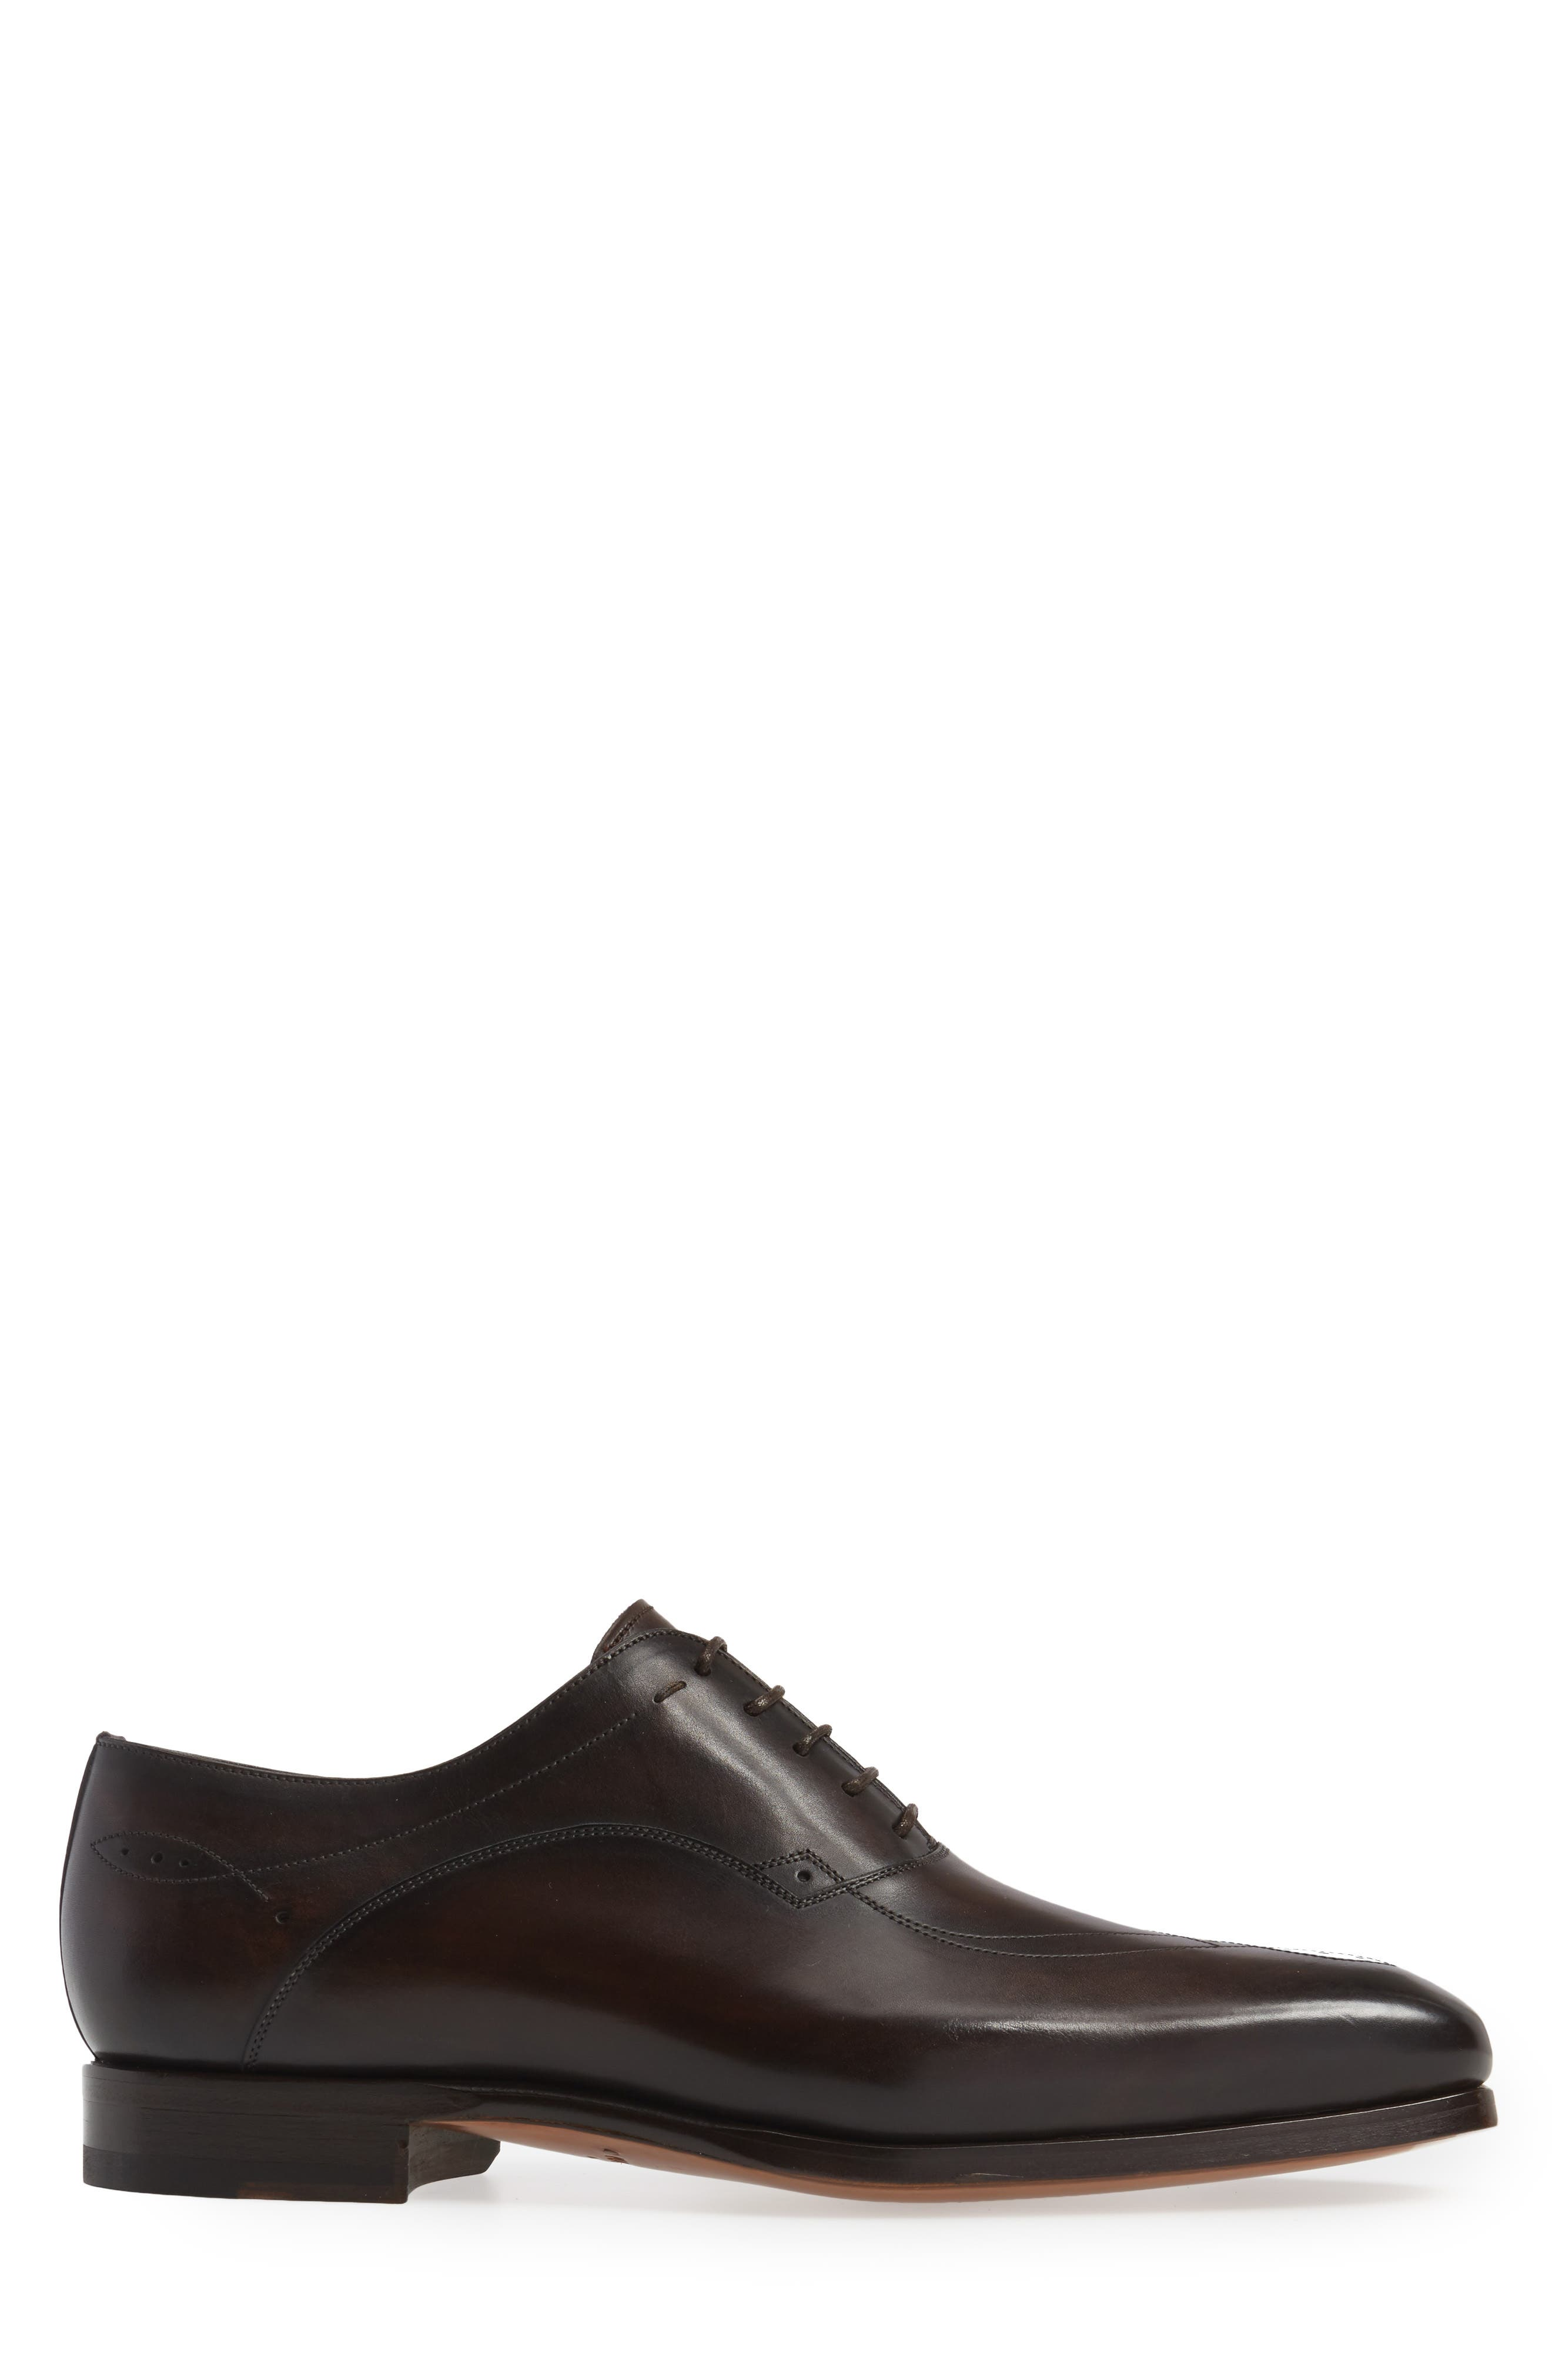 Francisco Plain Toe Oxford,                             Alternate thumbnail 3, color,                             Brown Leather